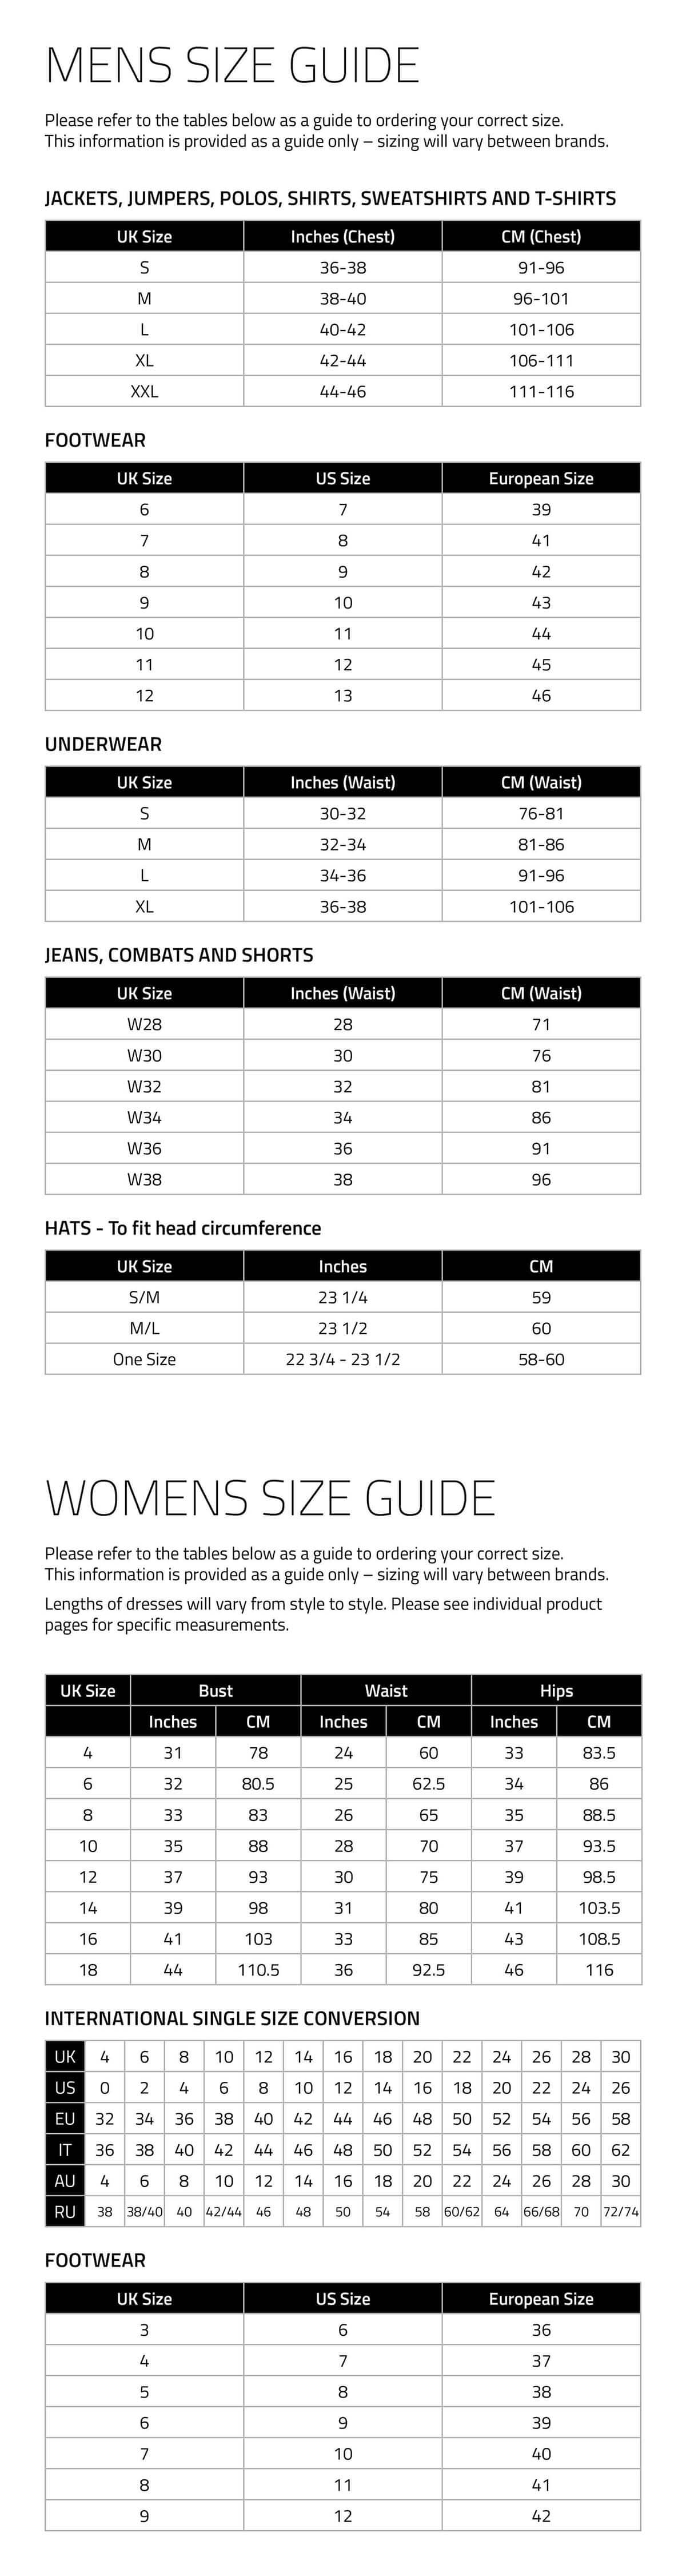 UK Size Guide - Men's, Women's, Kid's Clothing, Footwear, Underwear - Size Chart: EU, USA, International equivalents for UK sizes